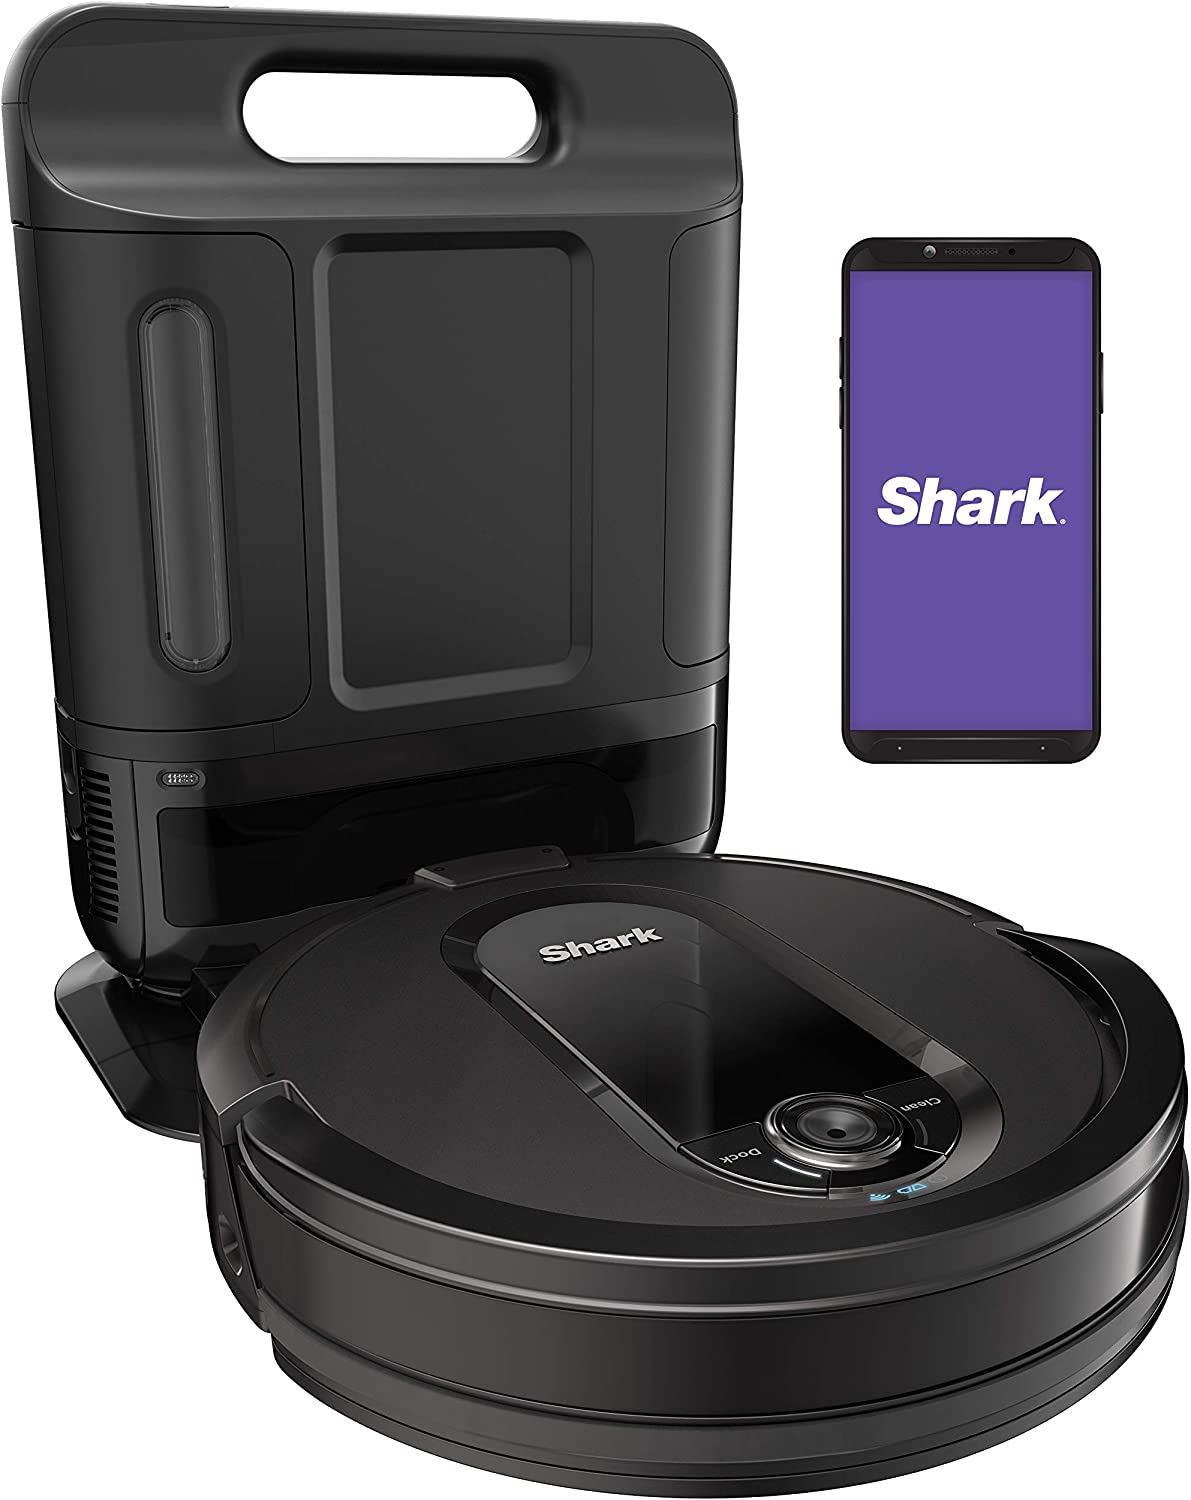 Shark IQ Robot Self-Empty XL RV101AE, Robotic Vacuum, IQ Navigation, Home Mapping, Self-Cleaning Brushroll, Wi-Fi Connected, Works with Alexa